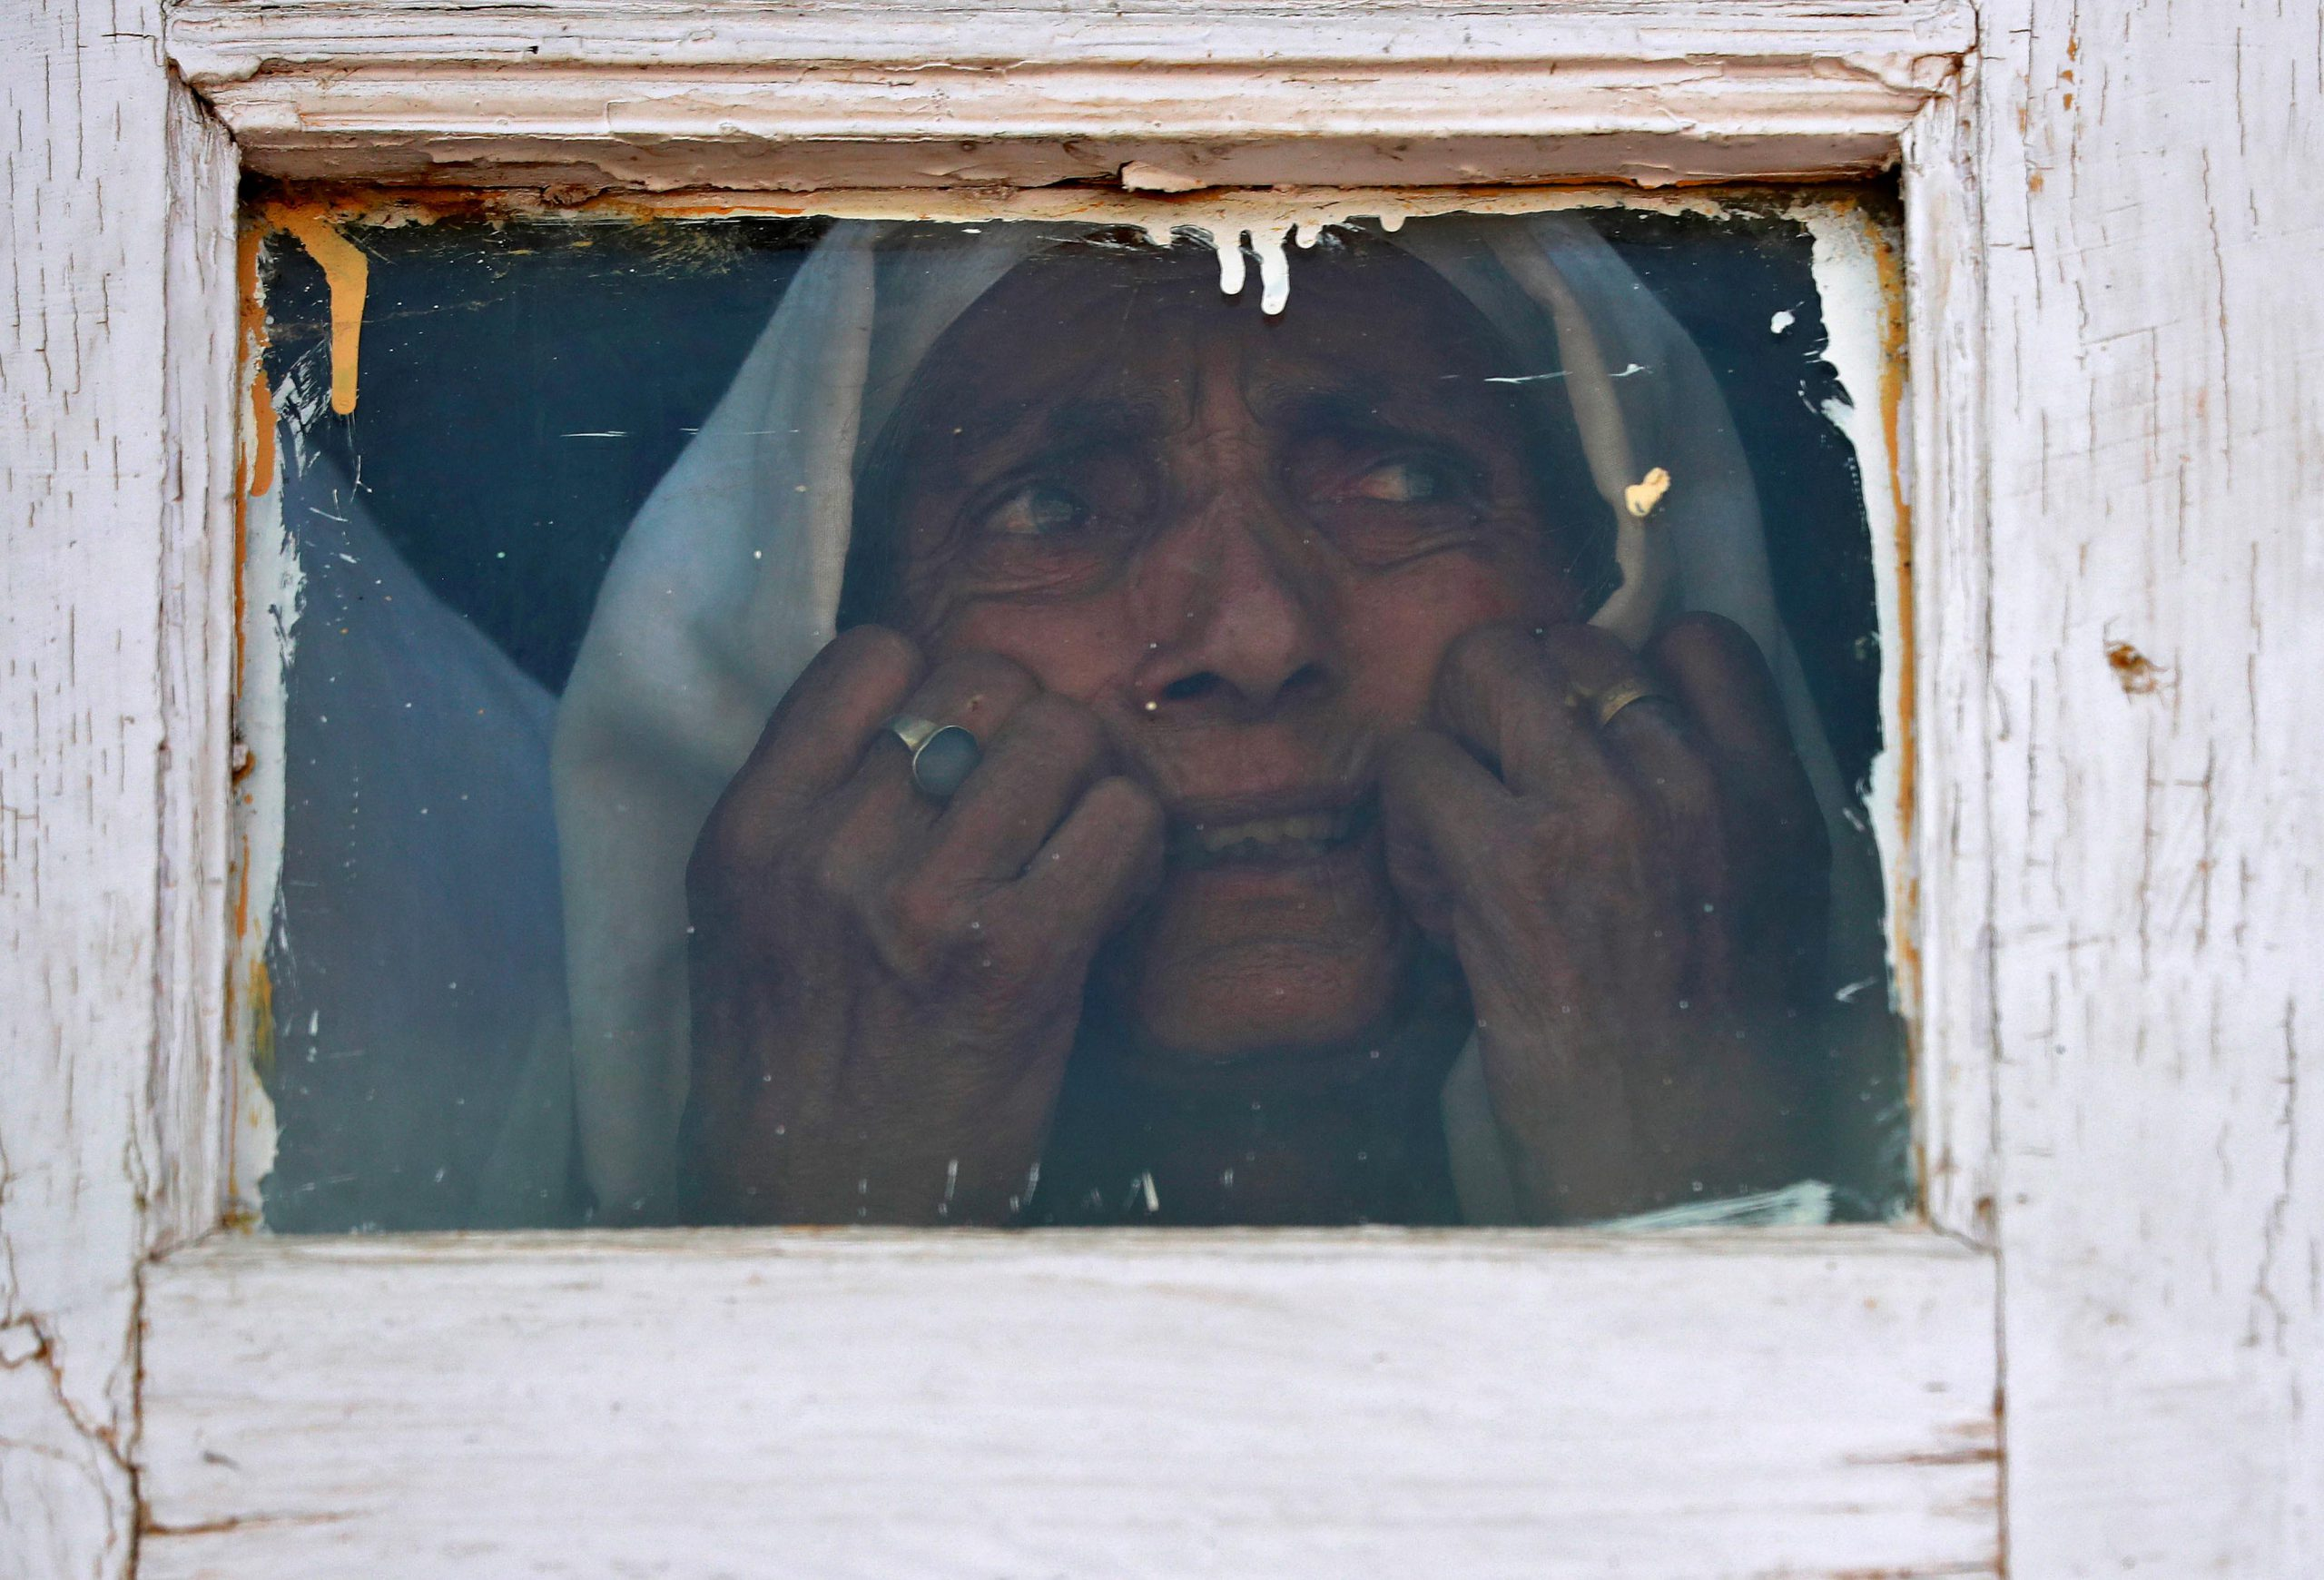 13 September 2019: A Kashmiri woman in Srinagar looks out from a mosque window at a protest about the Indian government scrapping the special constitutional status of Kashmir.